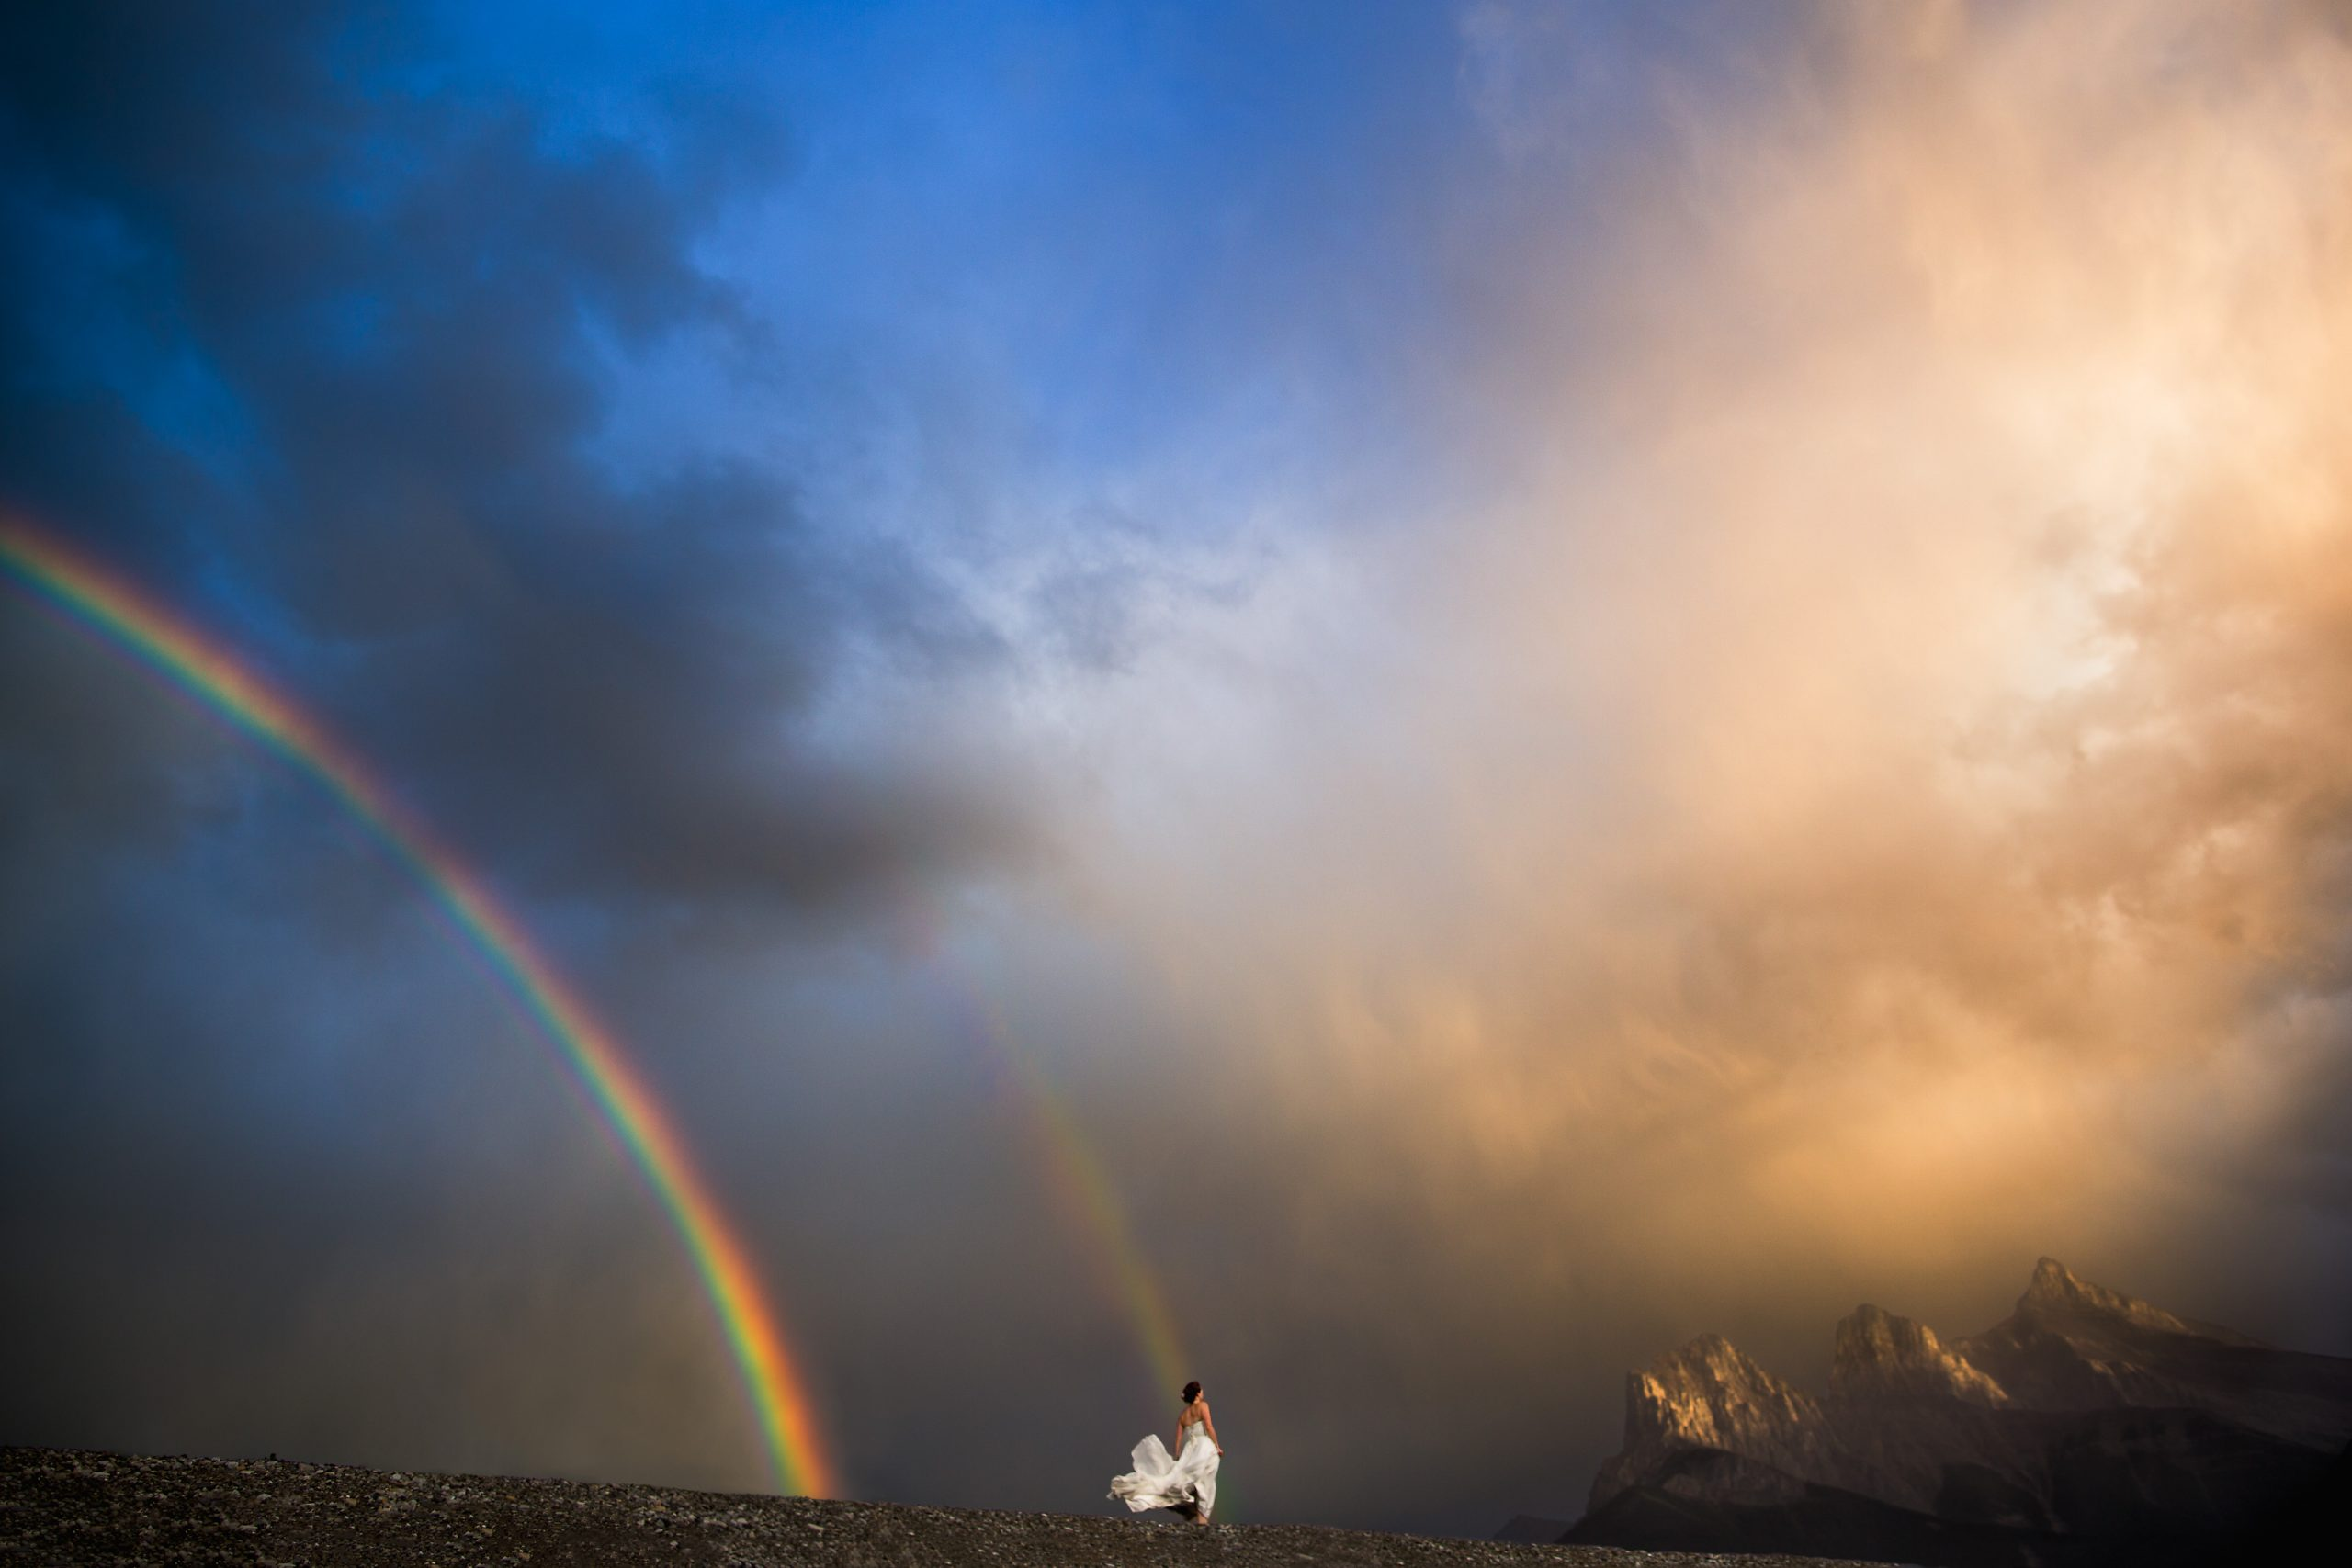 Bride in wedding dressing on mountain top with double rainbow in sky